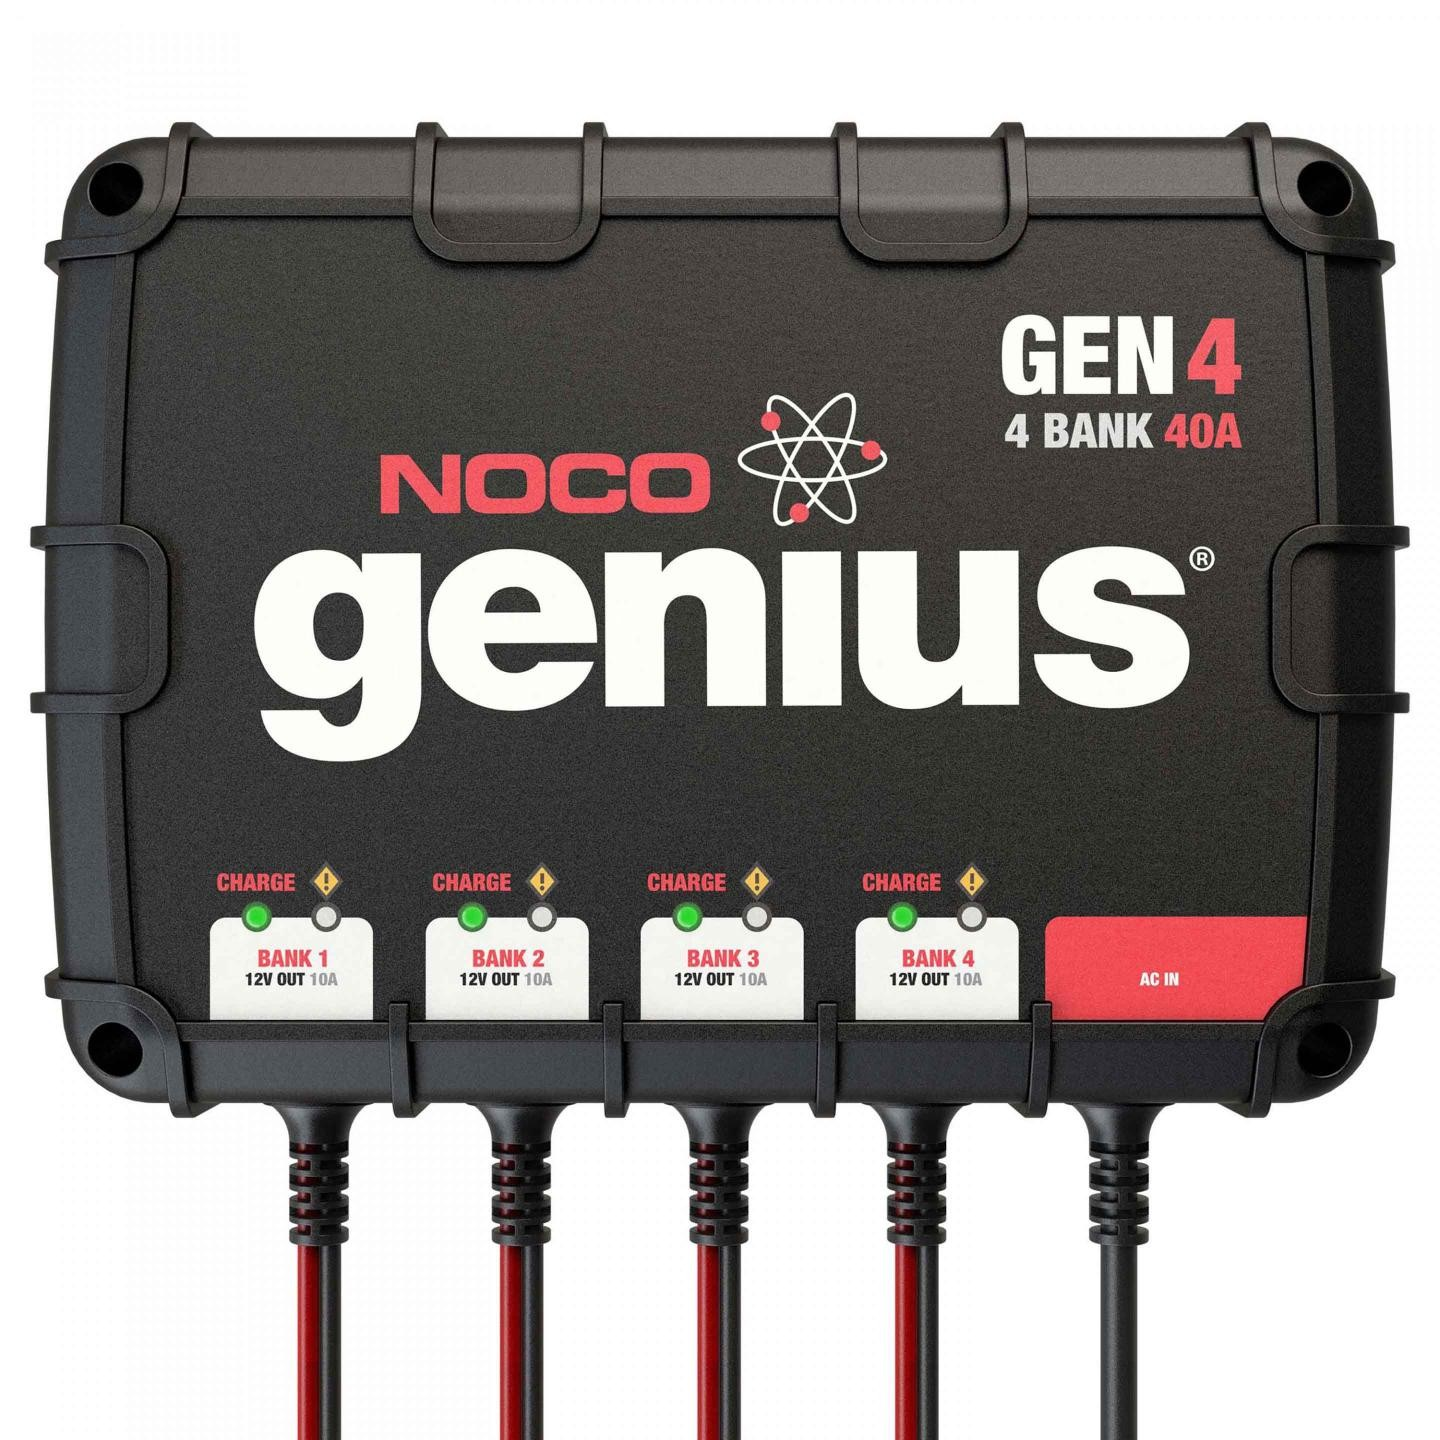 Noco 4 Bank 40a On Board Battery Charger Gen4 Solar Based Multipurpose Circuit